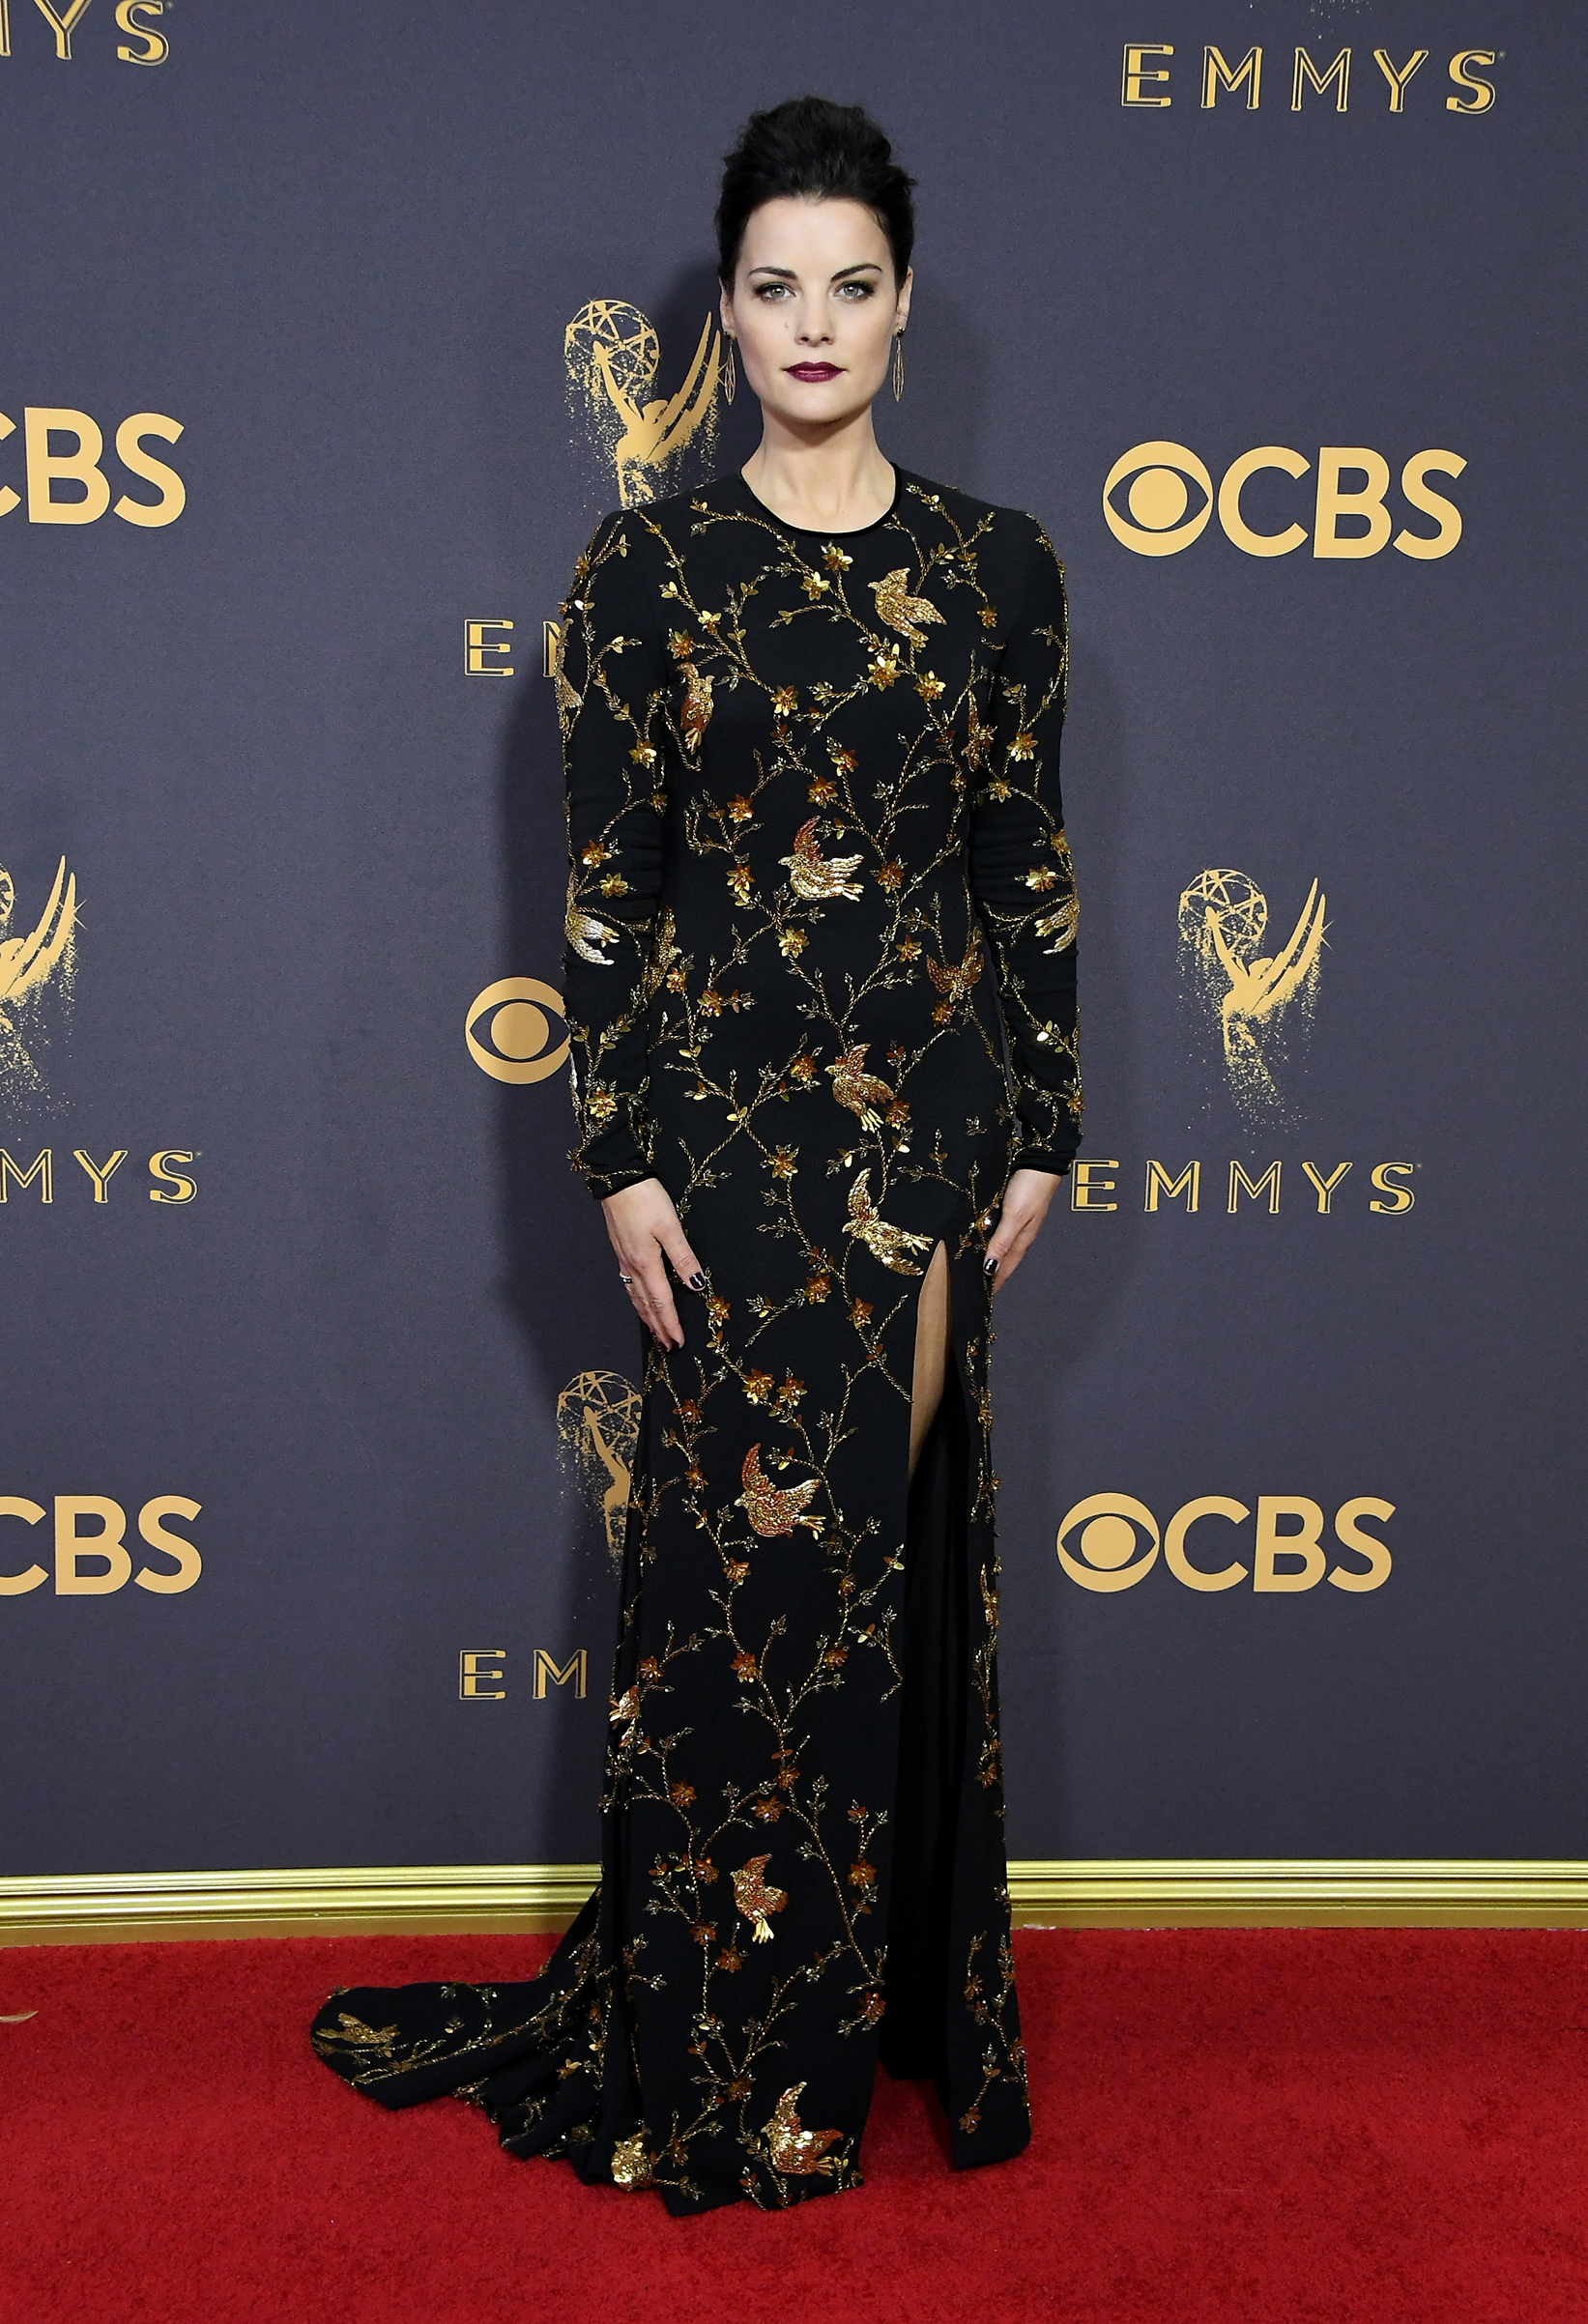 Actor Jaimie Alexander attends the 69th Annual Primetime Emmy Awards at Microsoft Theater on September 17, 2017 in Los Angeles, California.